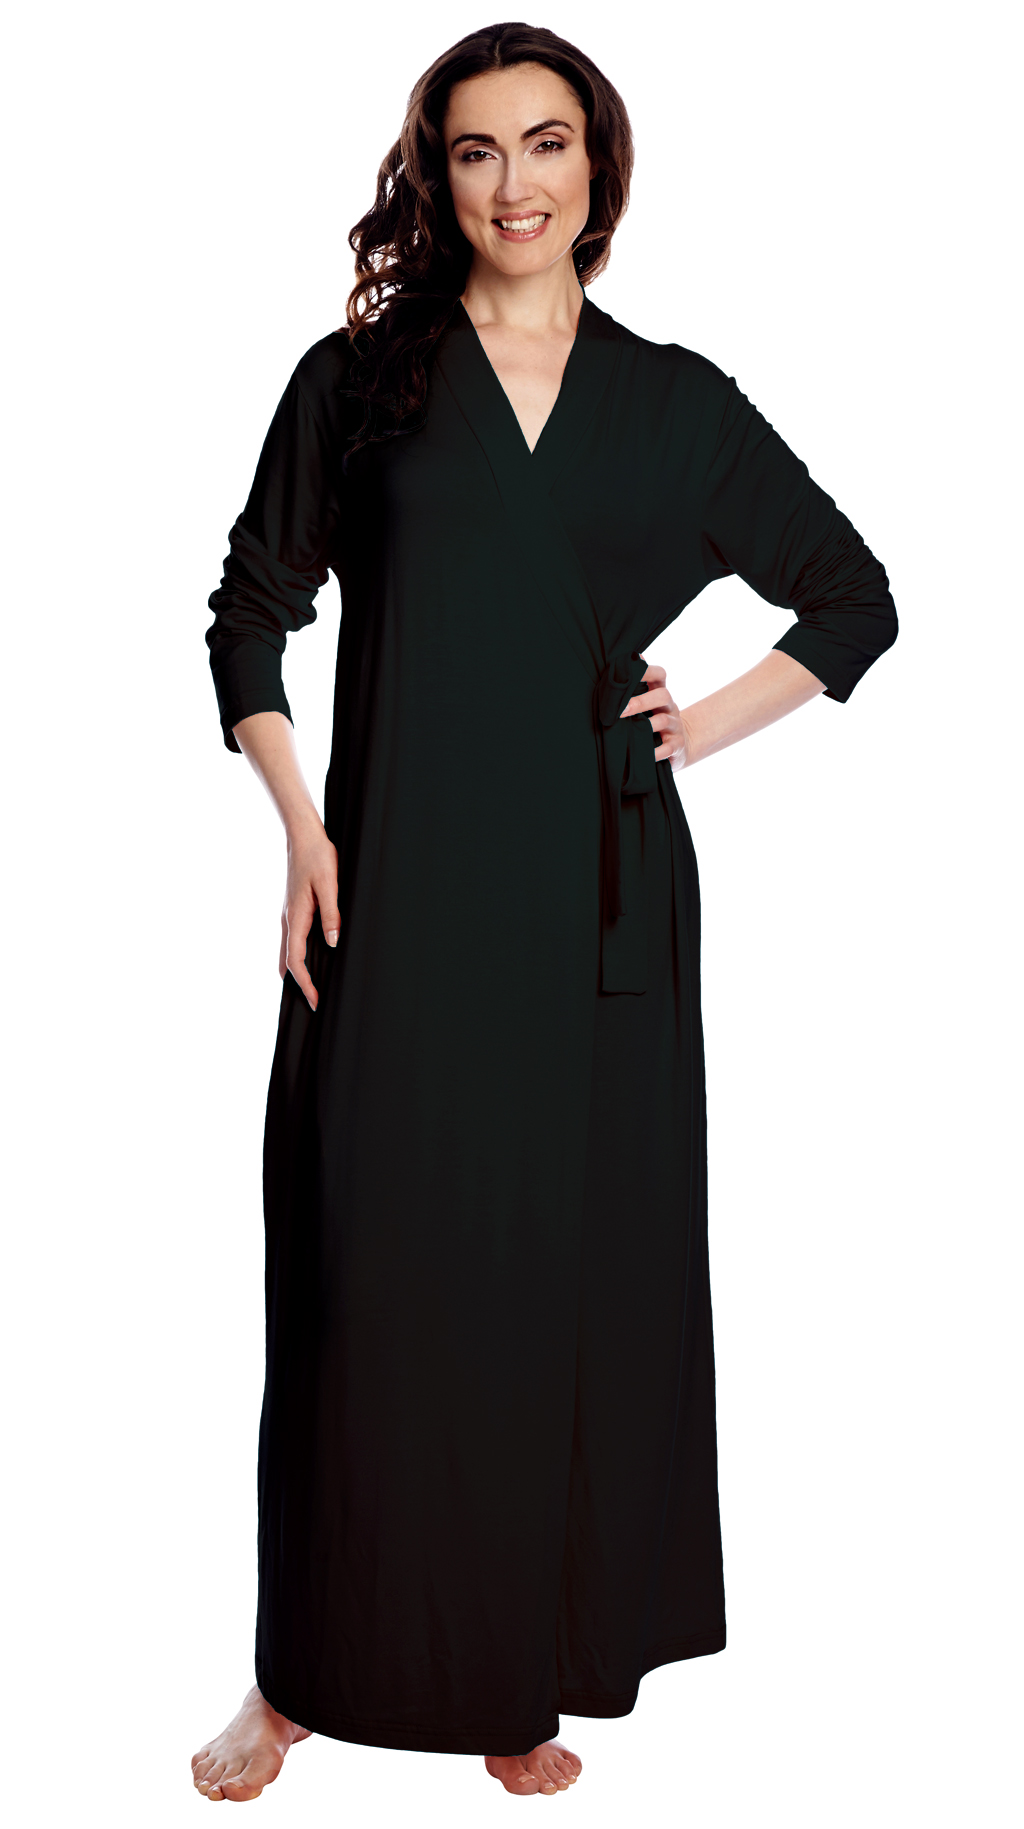 Black Robe for Women